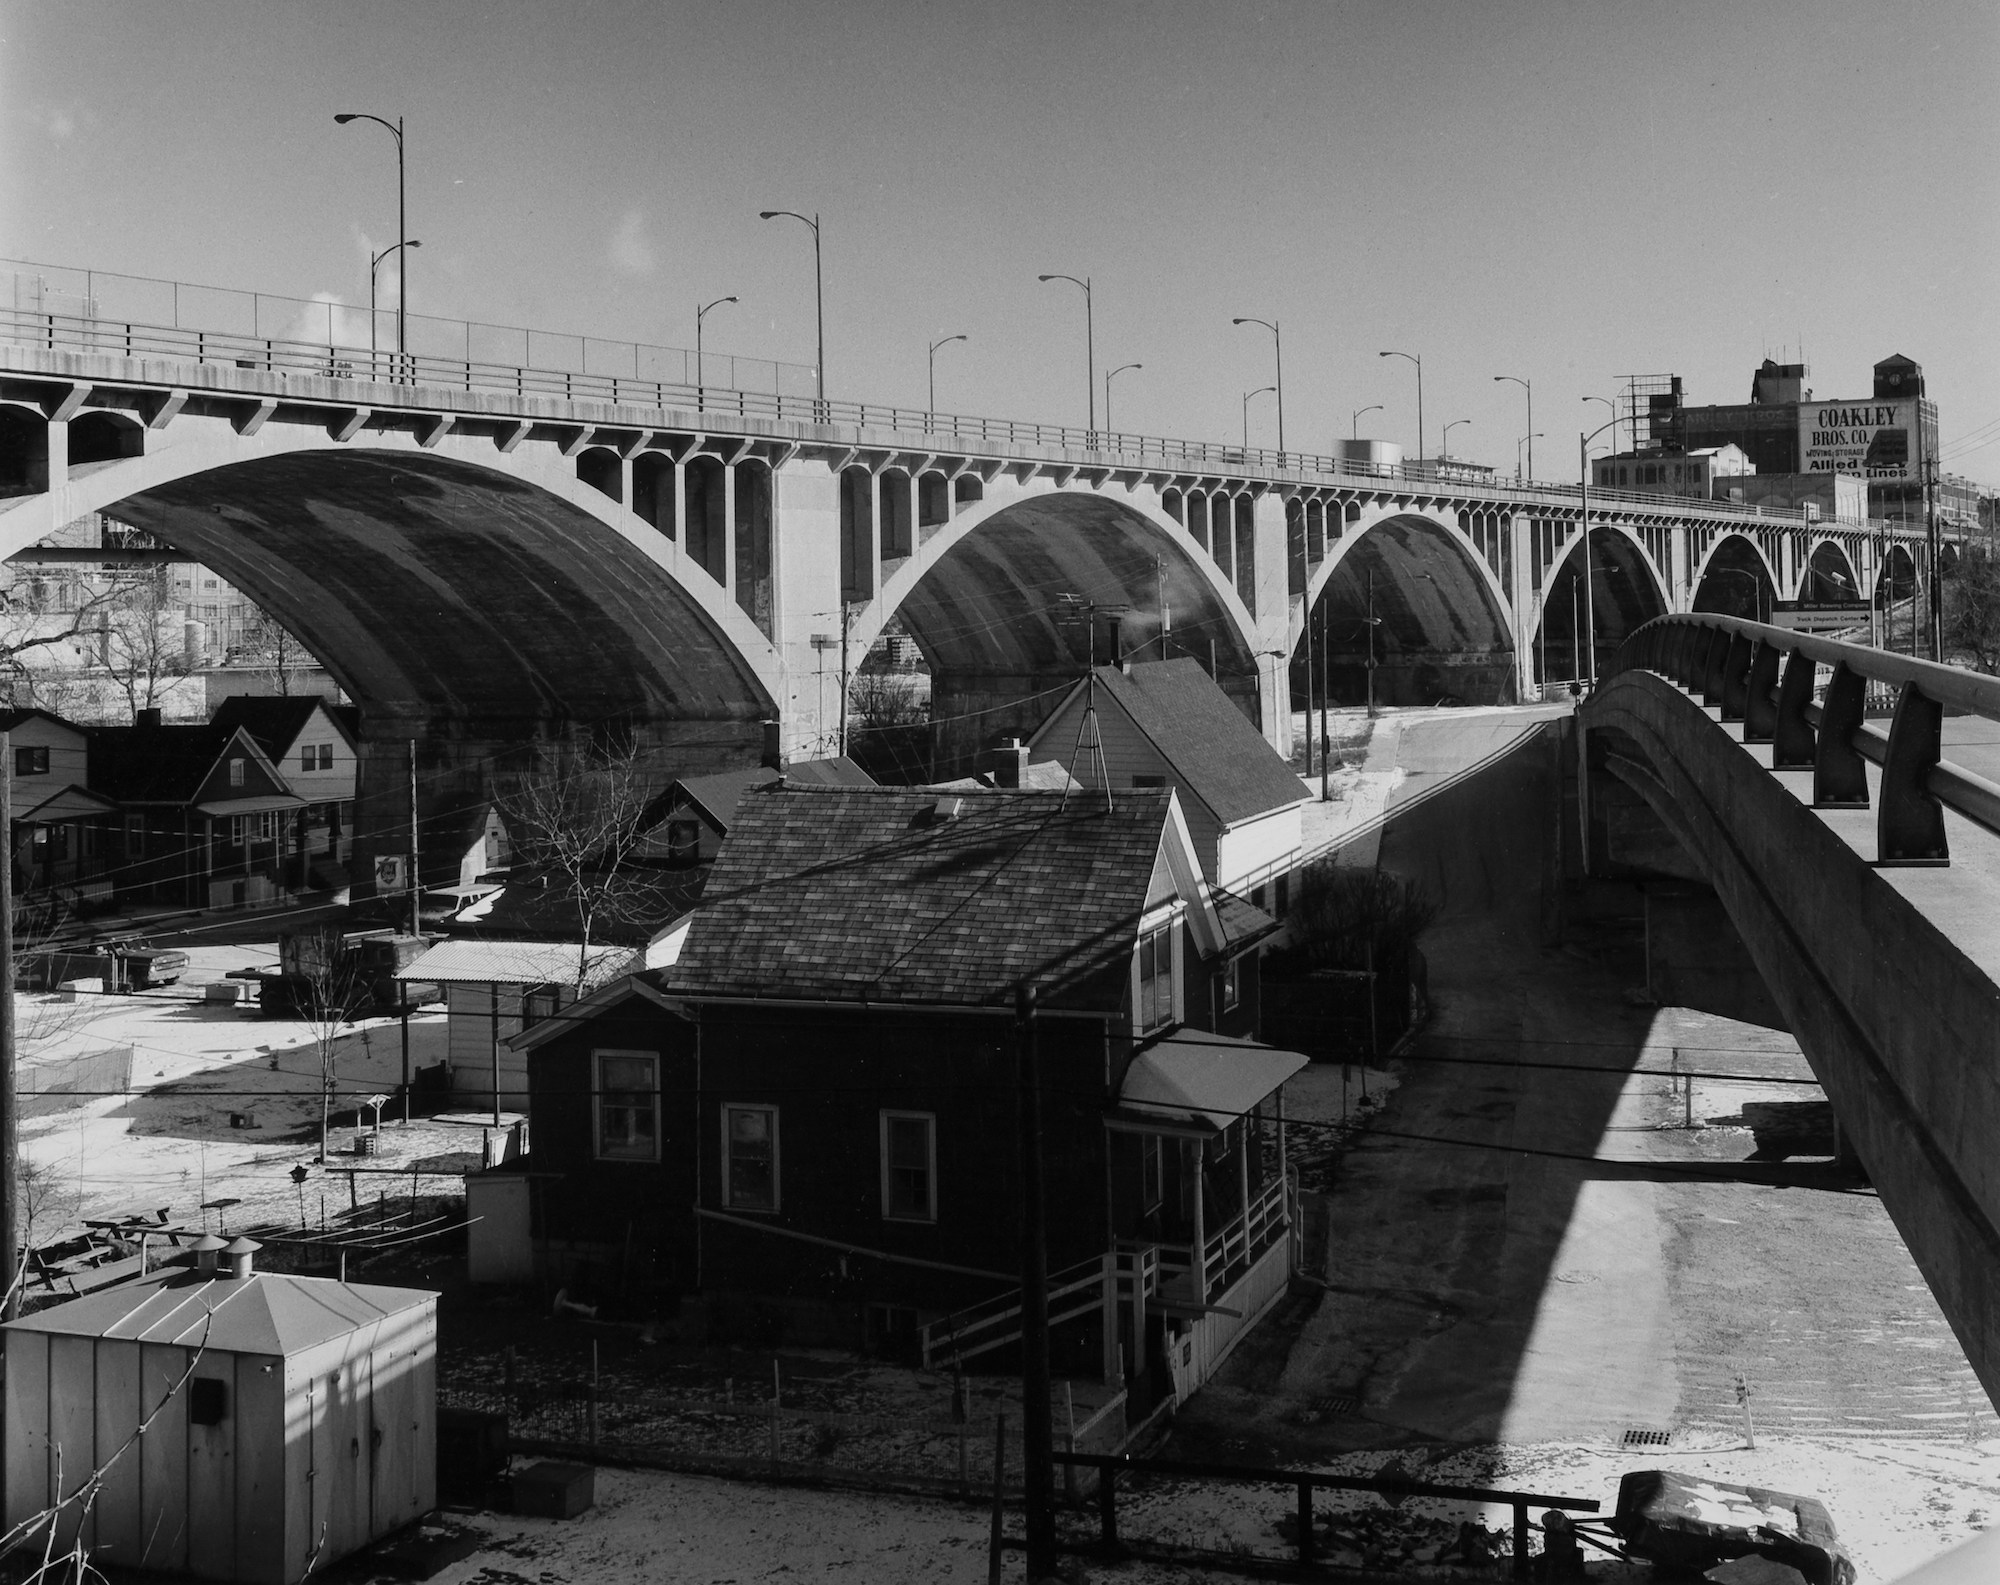 The old Wisconsin Avenue viaduct in 1988, showing the structures that originally surrounded it.